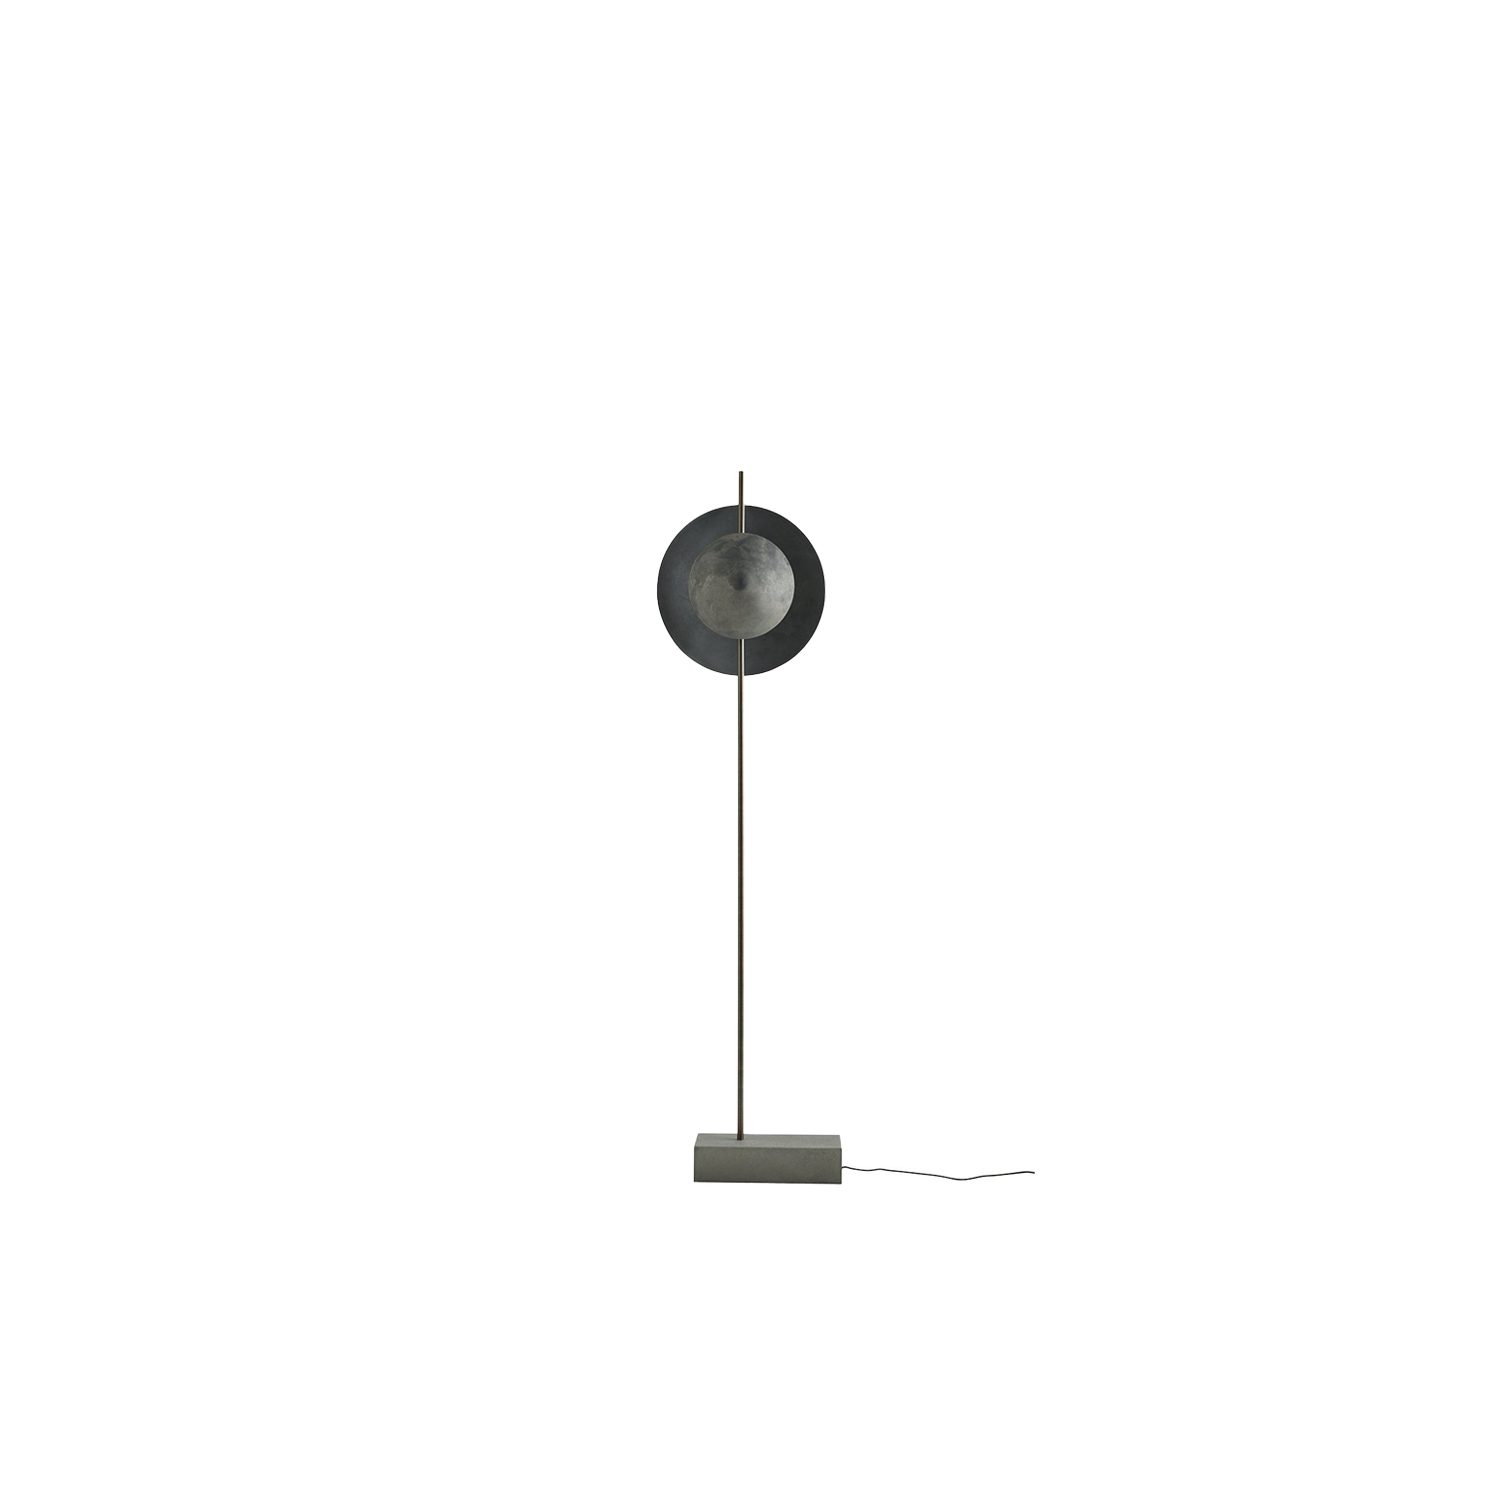 Dawn Floor Lamp - With its layered shades the Dusk and Dawn lamp series playfully divides the light into a rhythm of exposure.   The almost eclipse-like feeling contributes to an intimate and cozy atmosphere creating an art piece in itself.   By challenging the material and form of the base the Dusk and Dawn lamps has become a new way of presenting and integrate light design in interior schemes.   The raw handmade oxidized aluminum base creates stability and continuity to the lamp while the two spun oxidized aluminum shades create a geometrical and clean look that gives depth to the smooth light. | Matter of Stuff